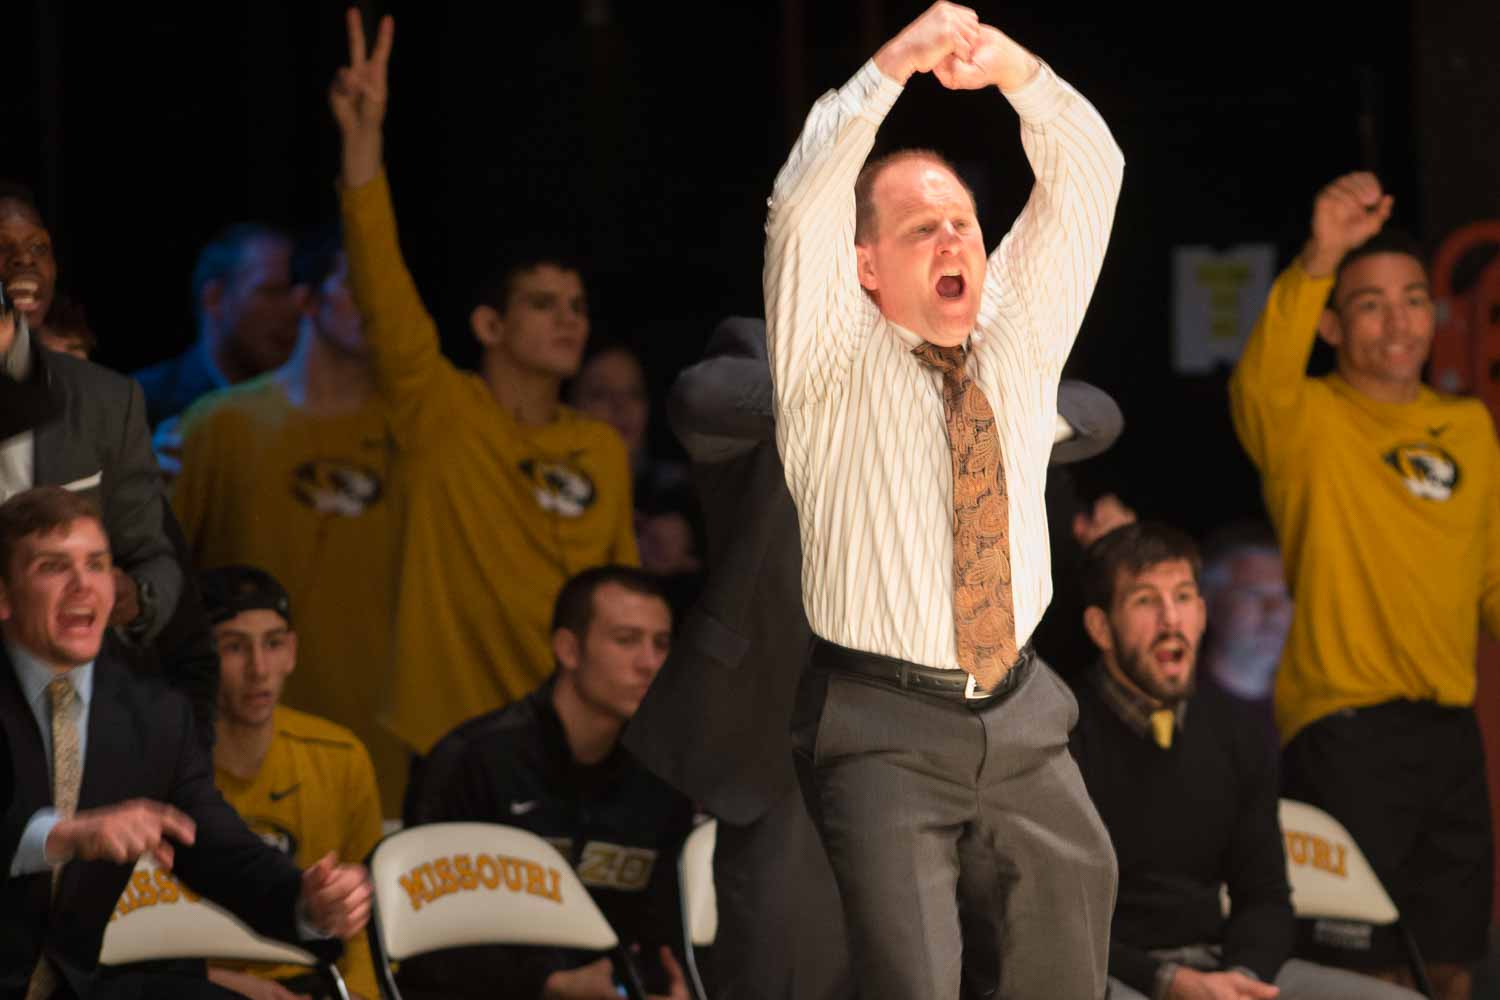 Heach coach Brian Smith signals for a holding call against Virginia Tech's No. 1-ranked Zach Epperly in the 174-pound match against Dylan Wisman.